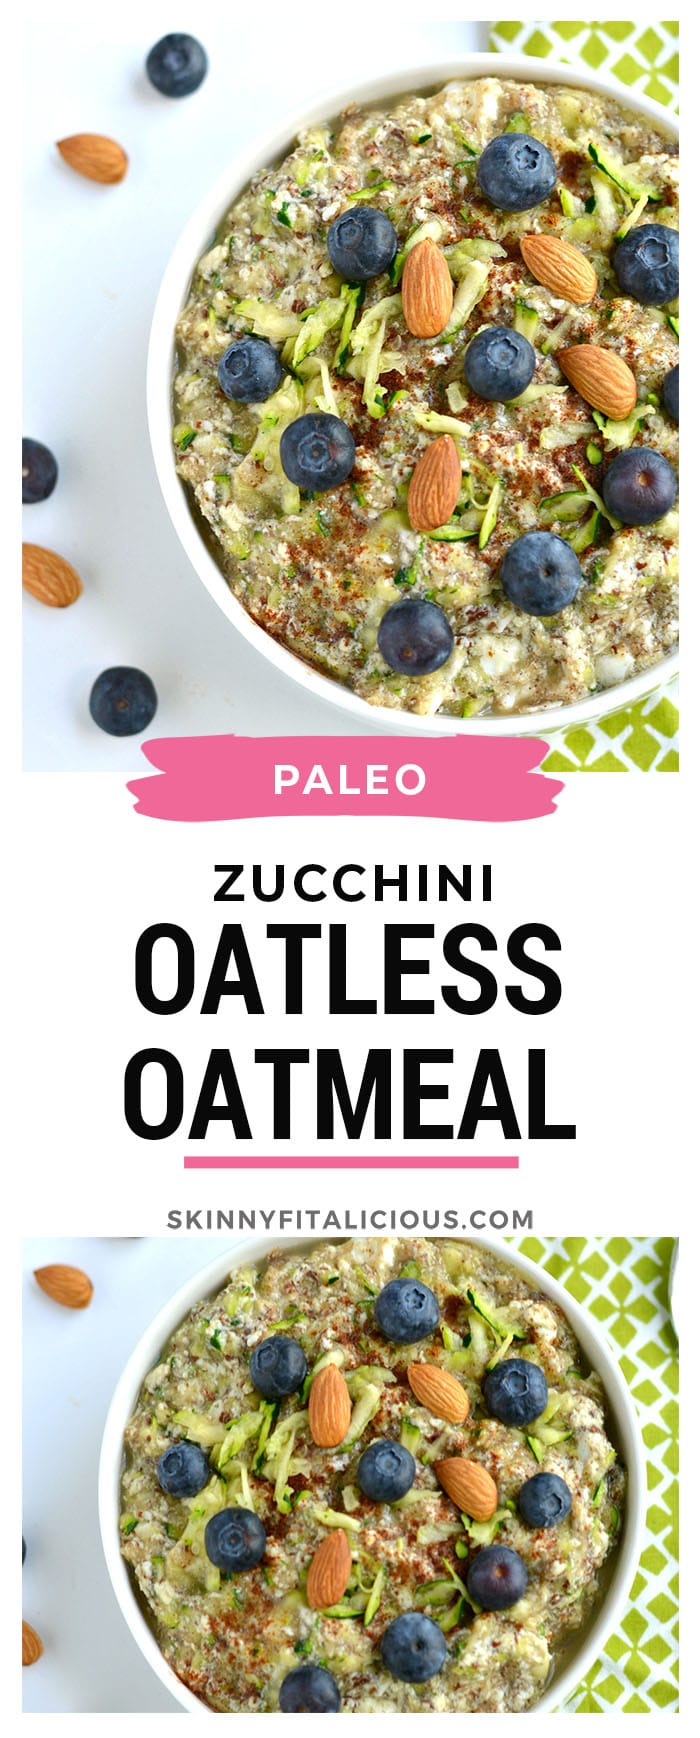 Zucchini Oatless Oatmeal is a Paleo twist on a classic bowl of morning oatmeal. Made with eggs, almond milk, zucchini, applesauce, flaxseed and cinnamon, this simple bowl of goodness is packed with protein and fiber. A nutritious way to stay full all morning! Gluten Free + Paleo + Low Calorie